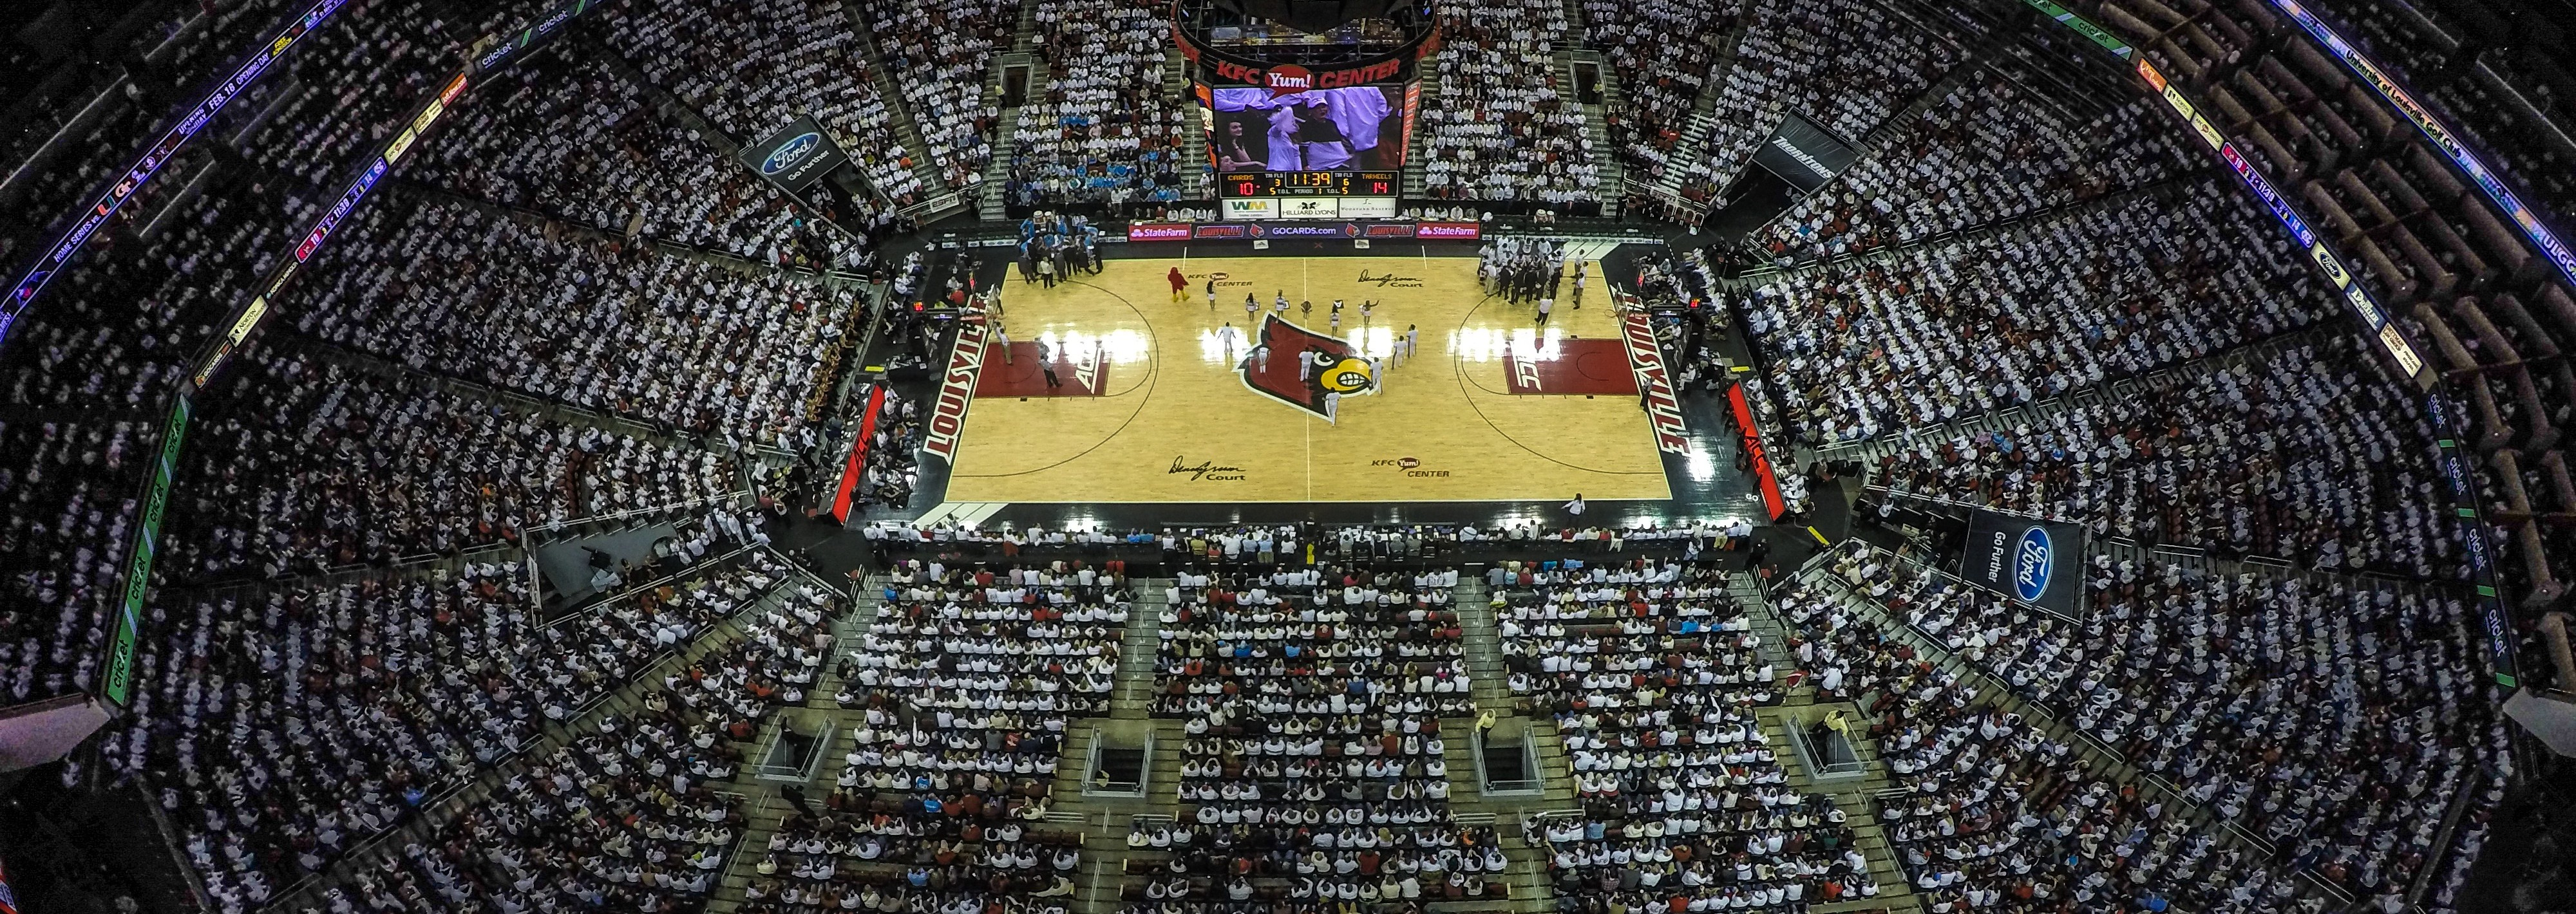 WHITEOUT Louisville vs. North Carolina 1-31-2015 Photo by Seth Bloom Fitted